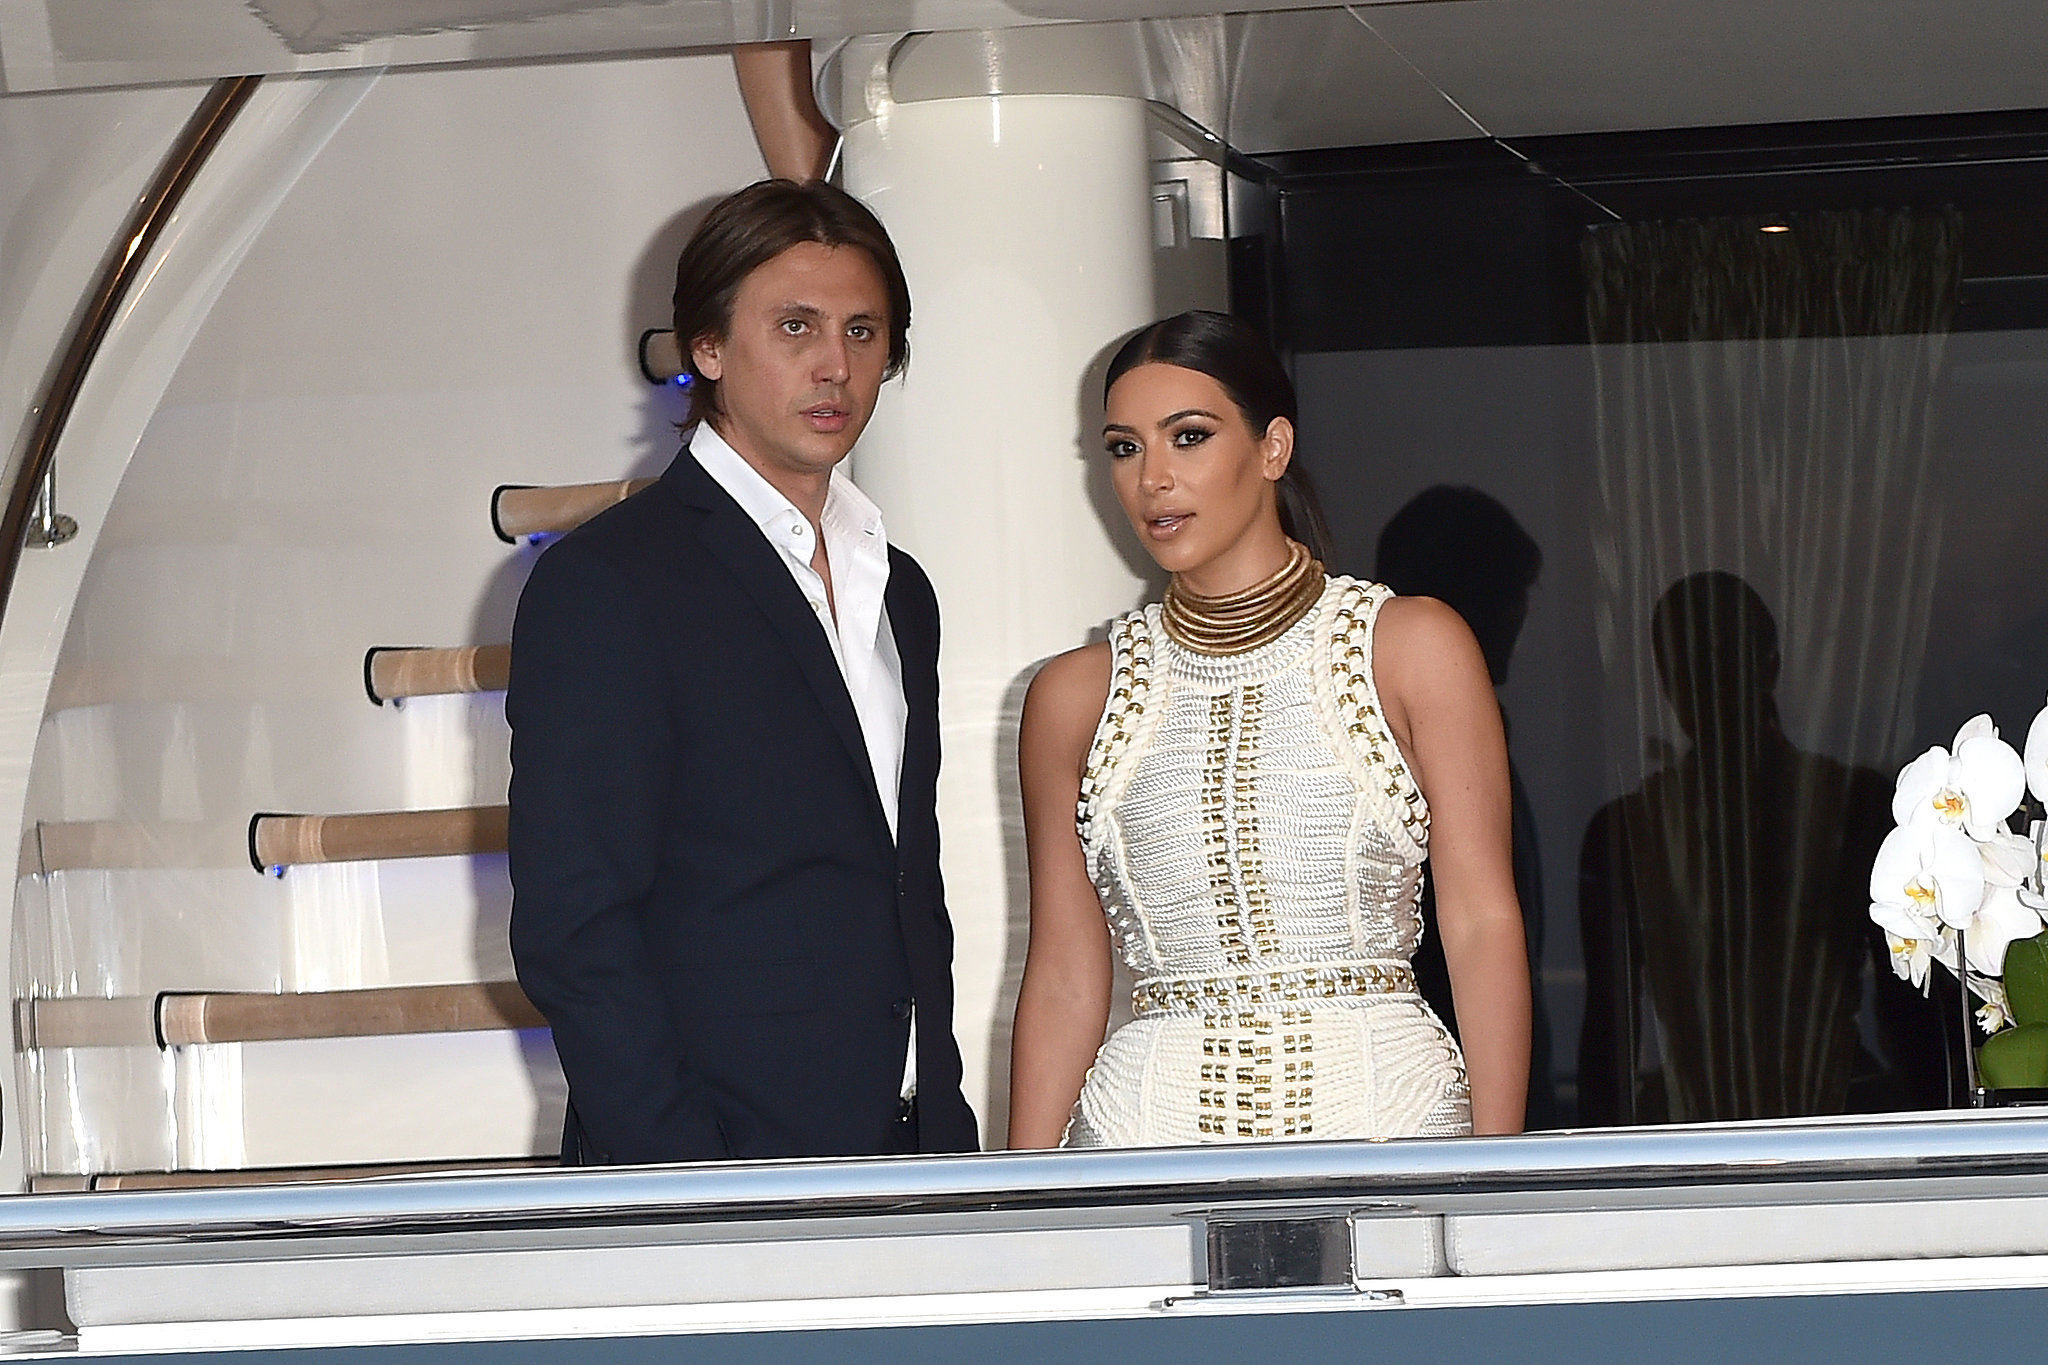 Kim Kardashian Speaks About Her Wedding Day For the First Time